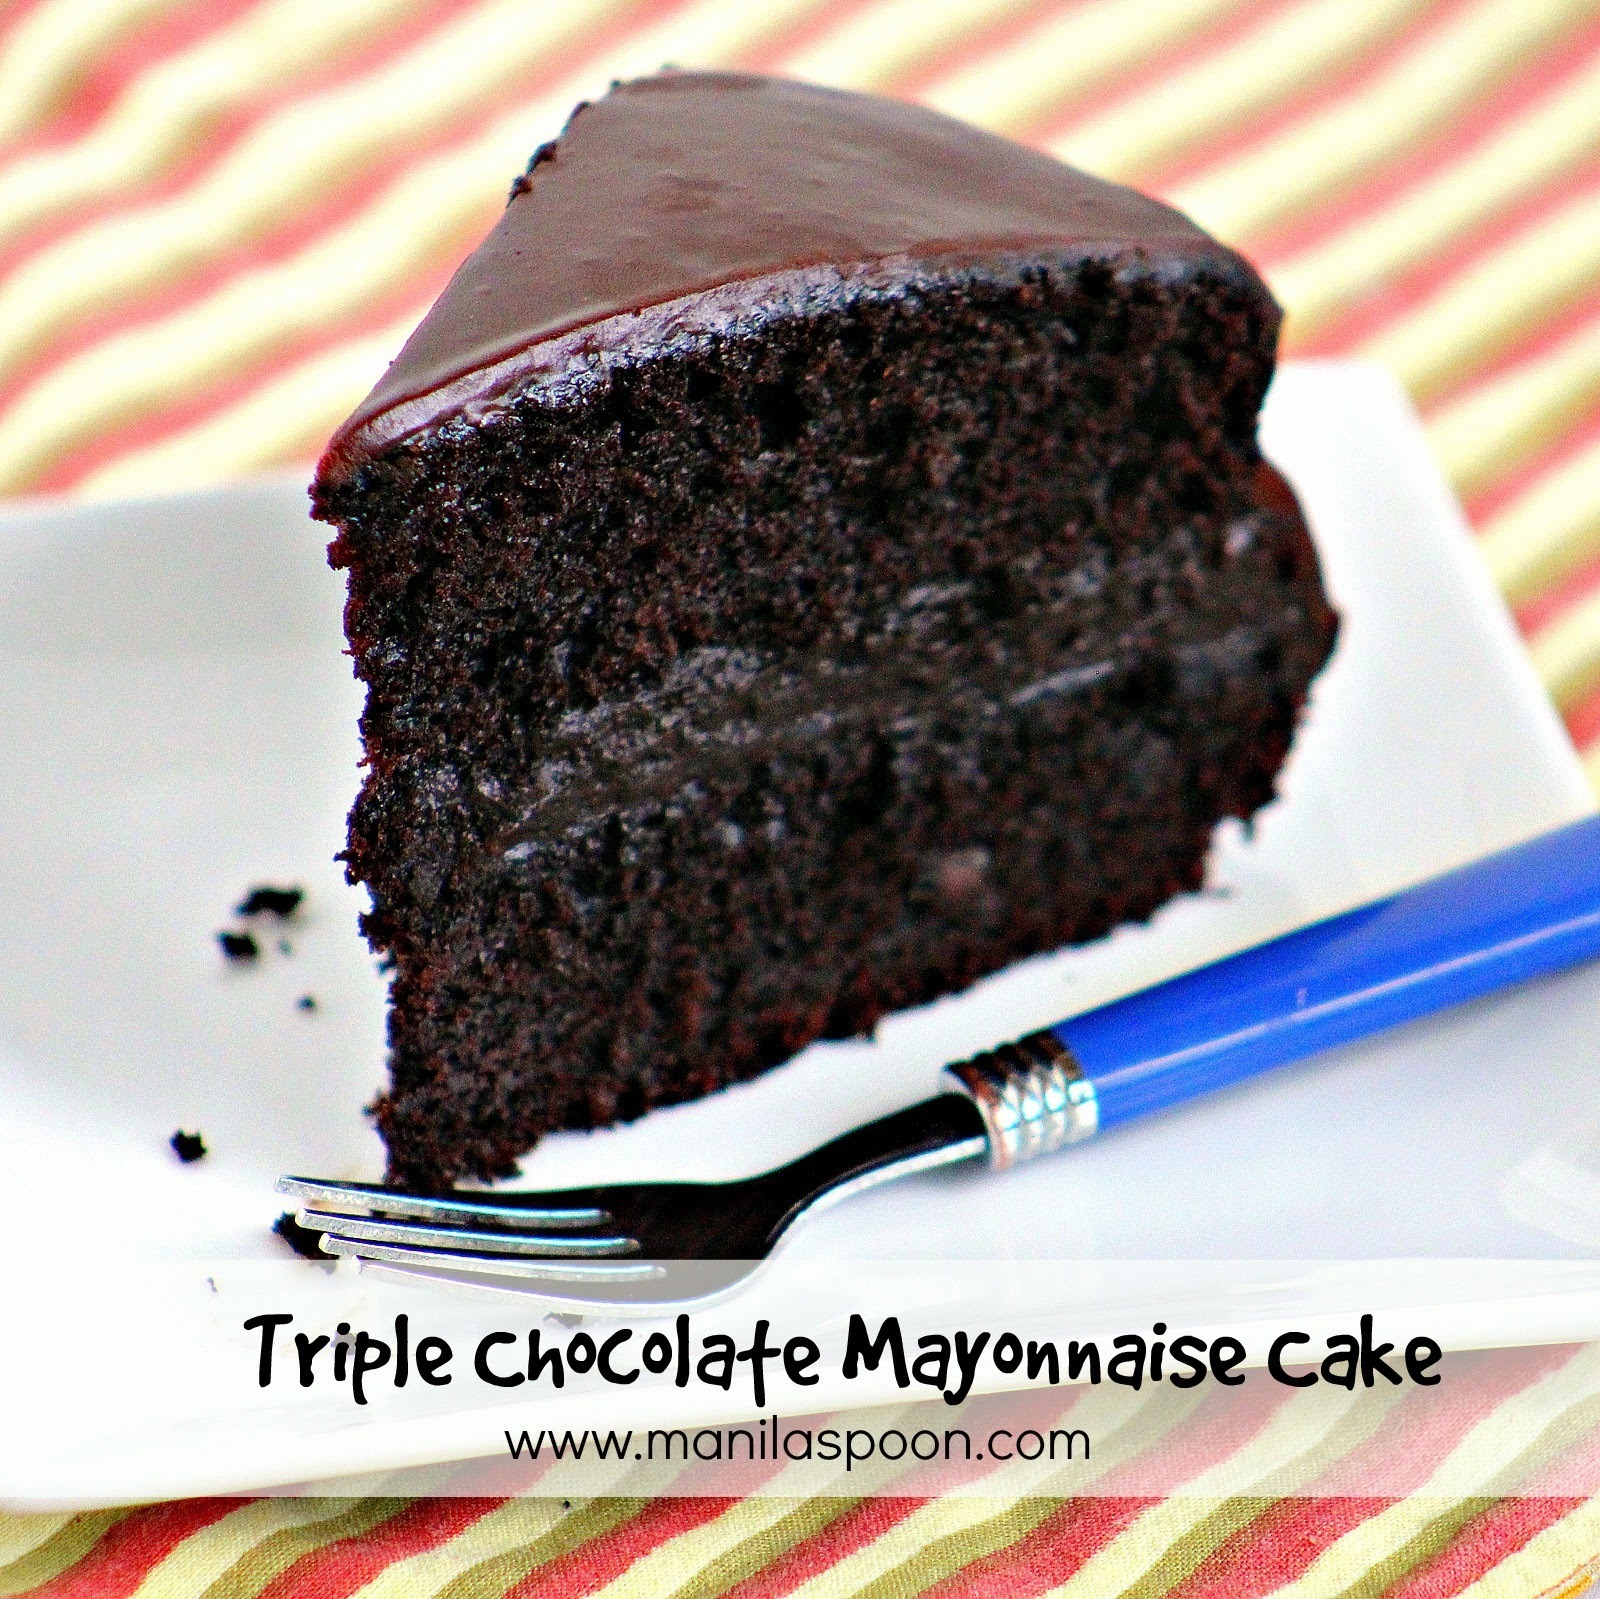 Triple Chocolate Mayonnaise Cake